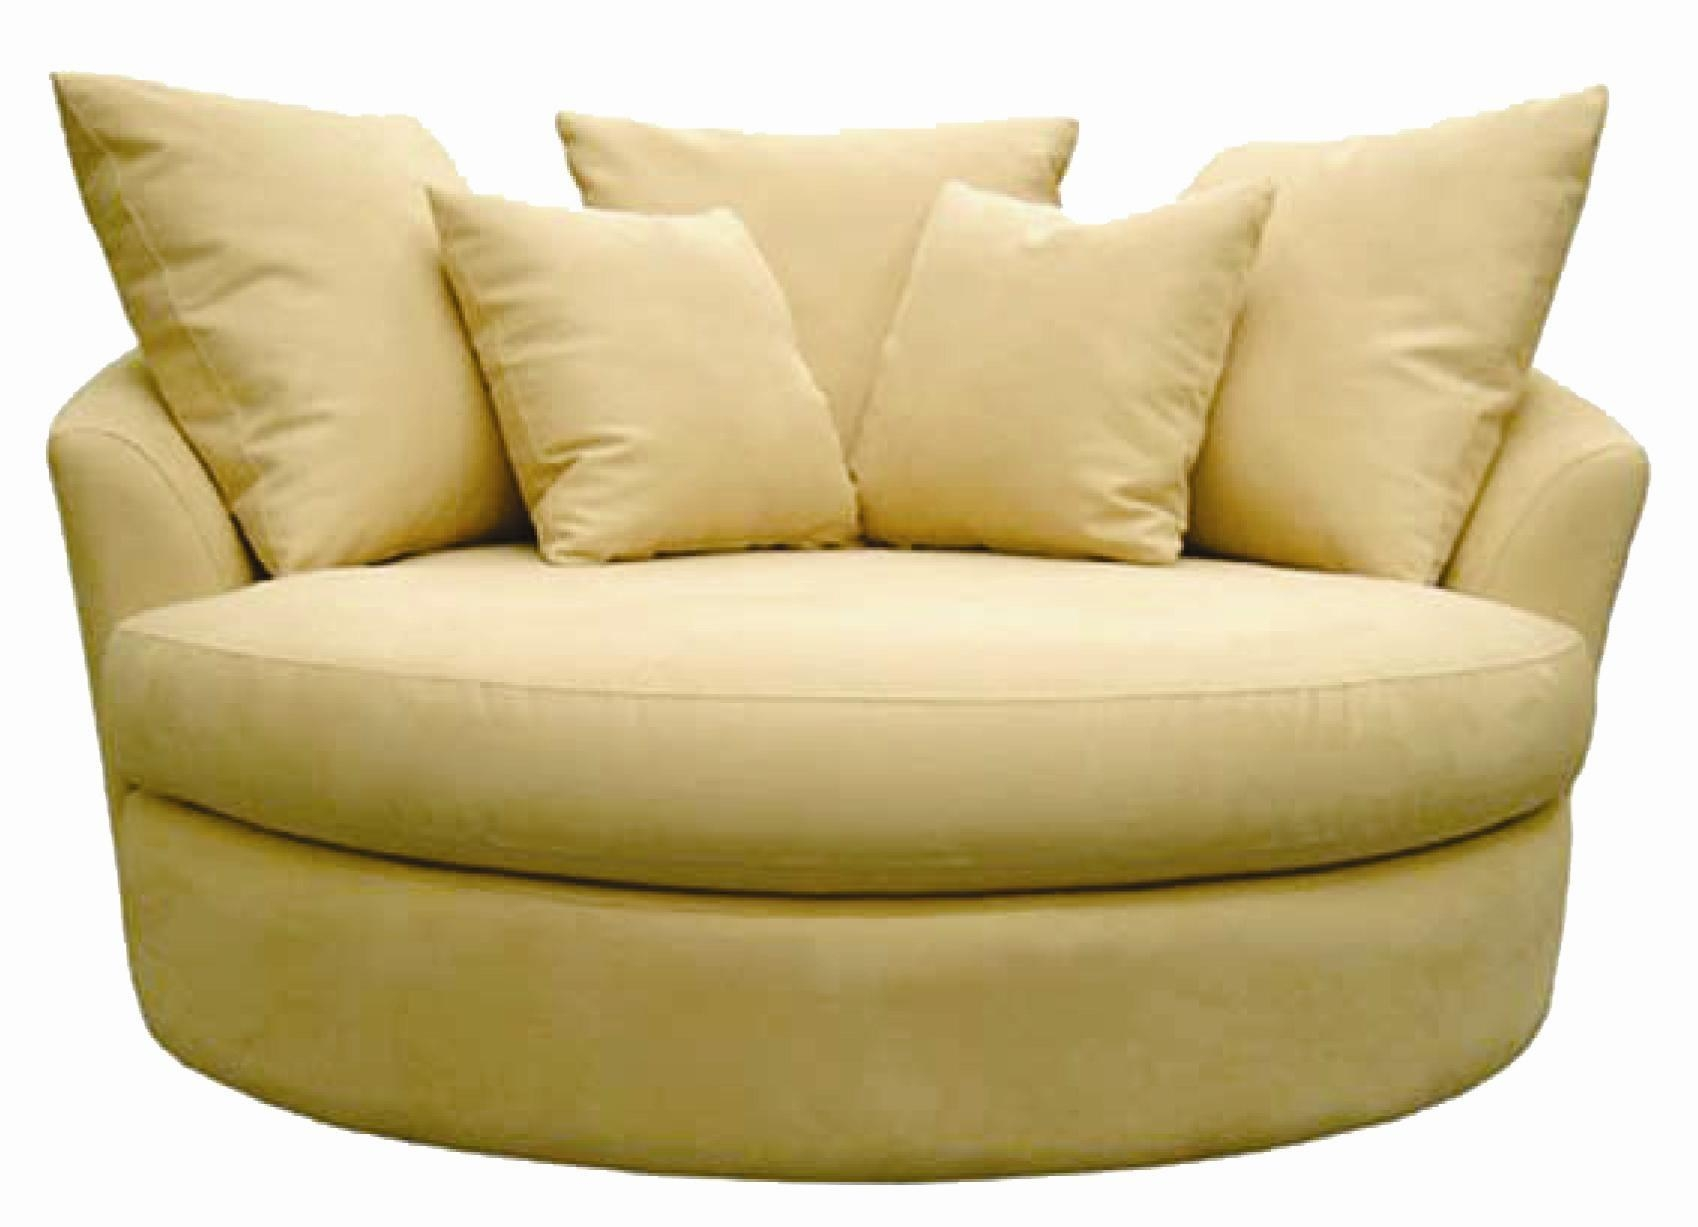 20+ Choices Of Round Sofa Chairs